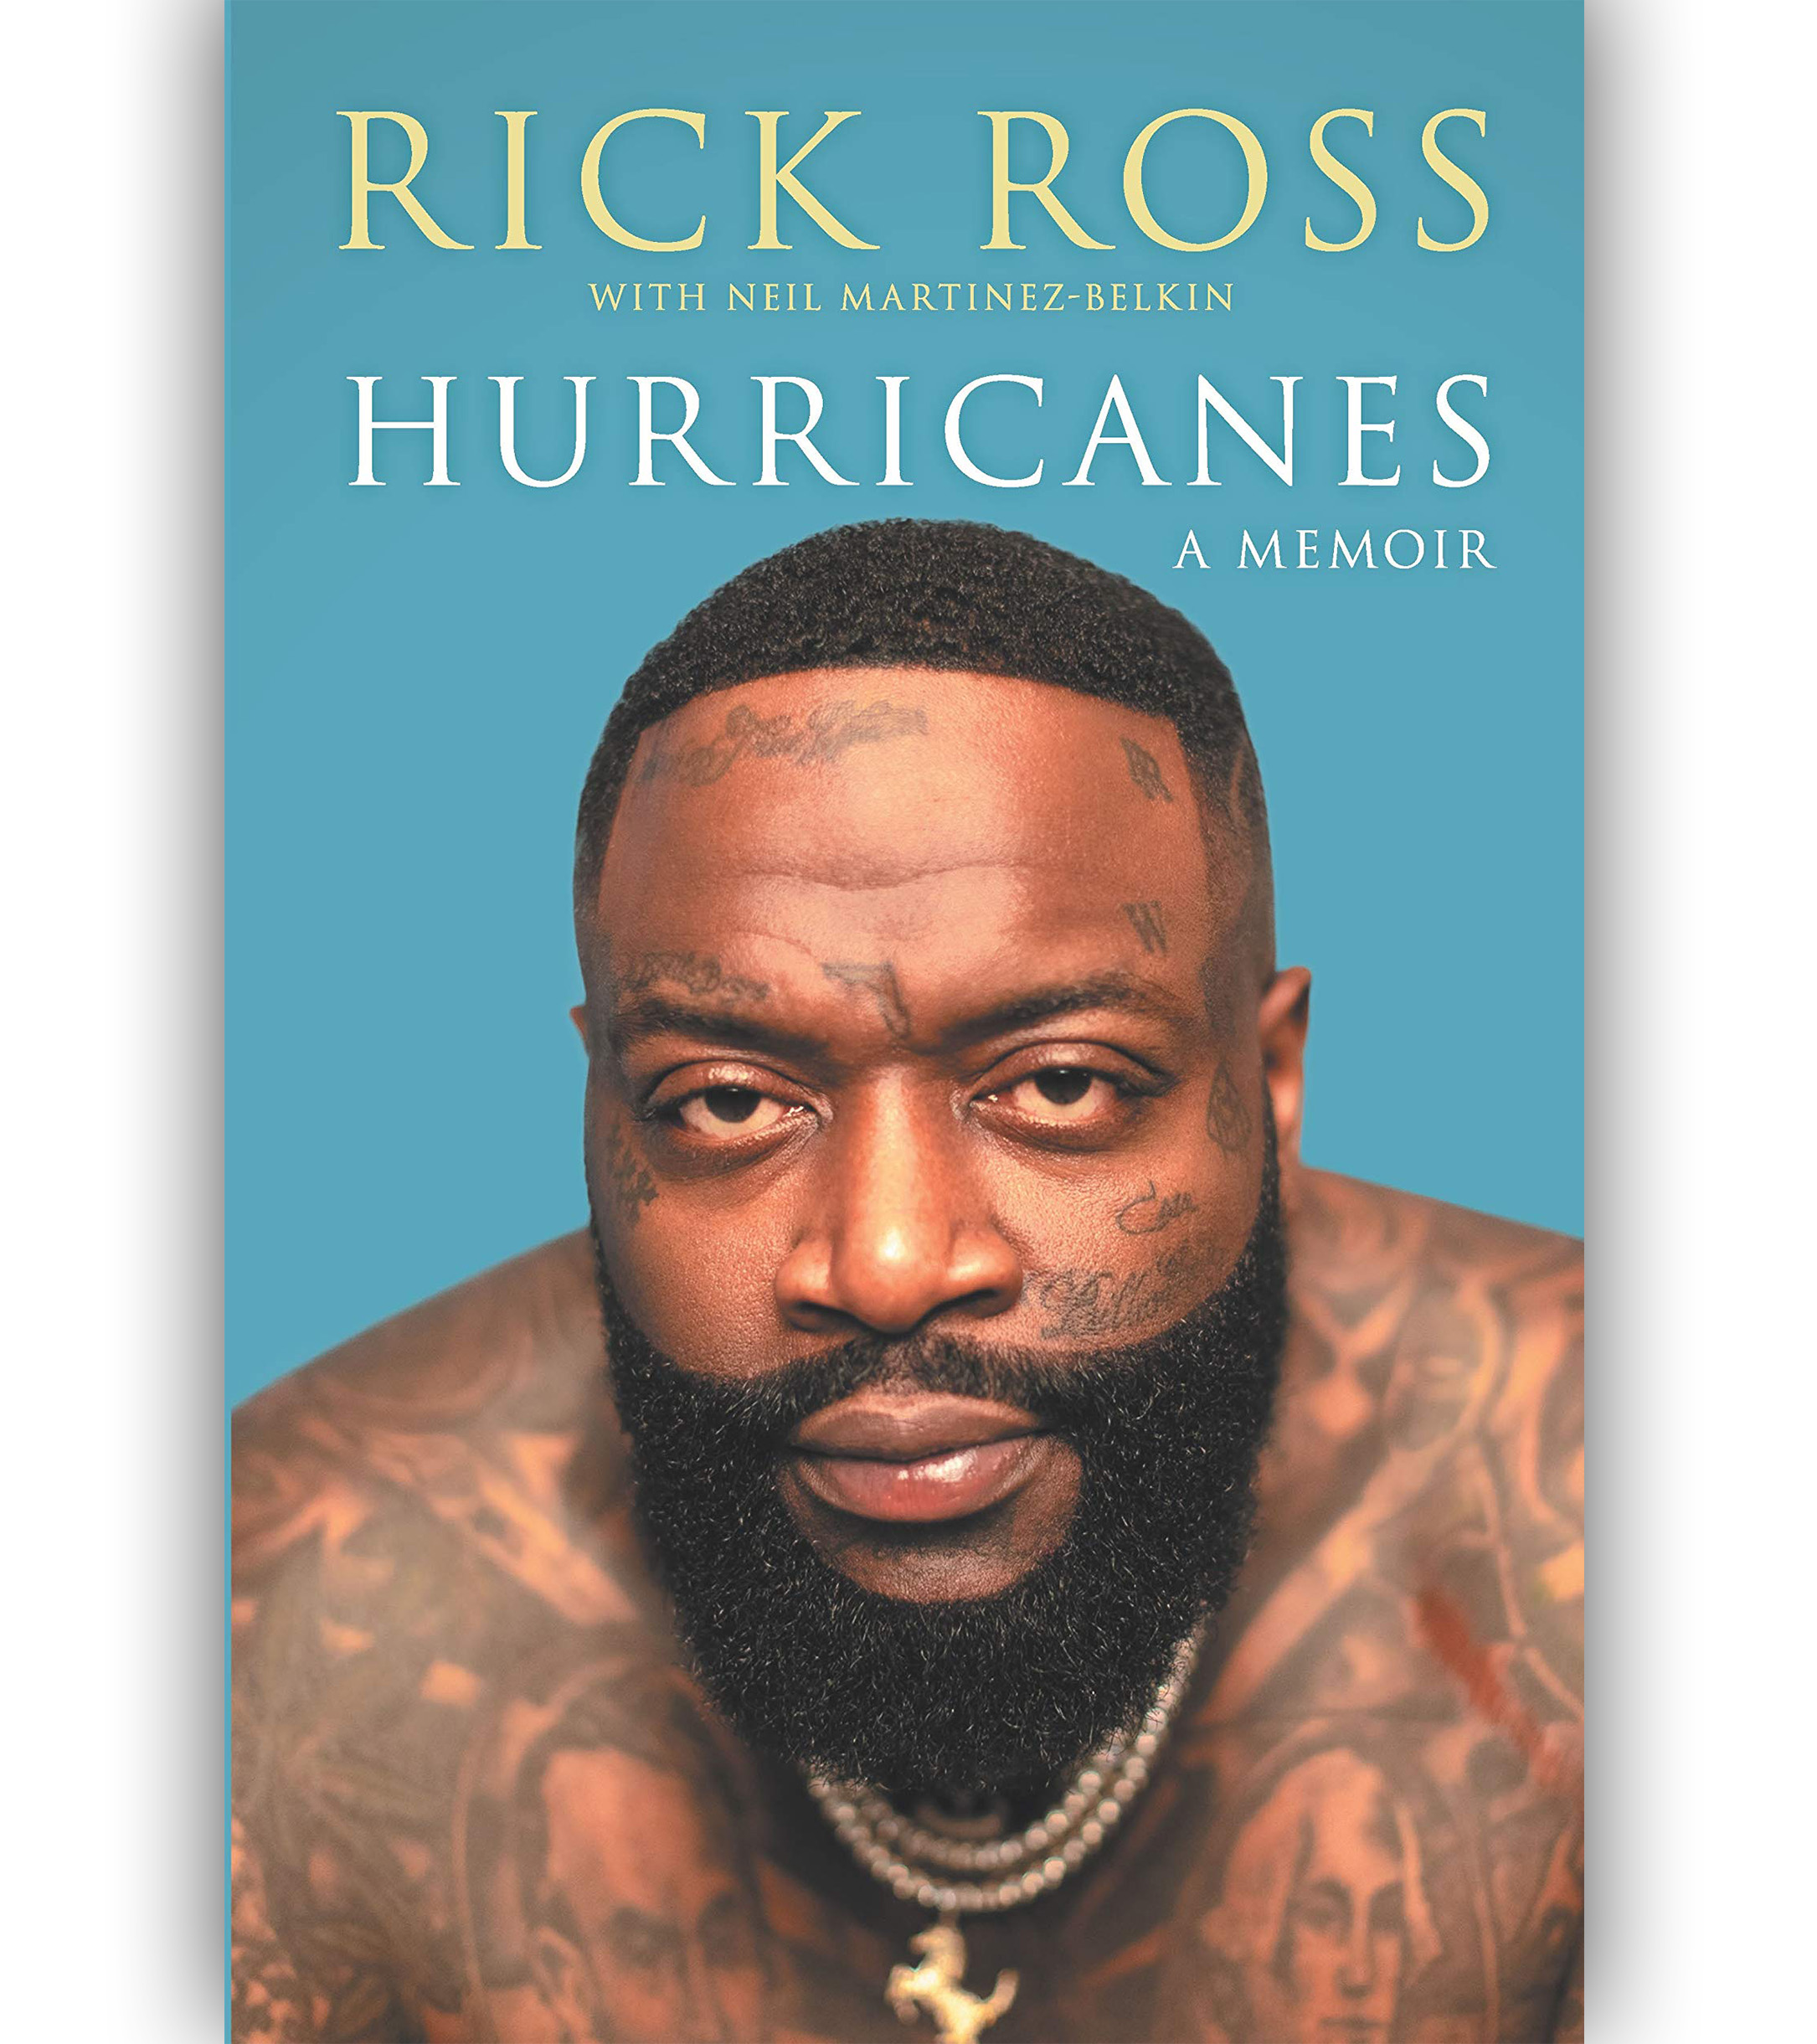 Hurricanes by Rick Ross with Neil Martinez-BelkinBook Cover